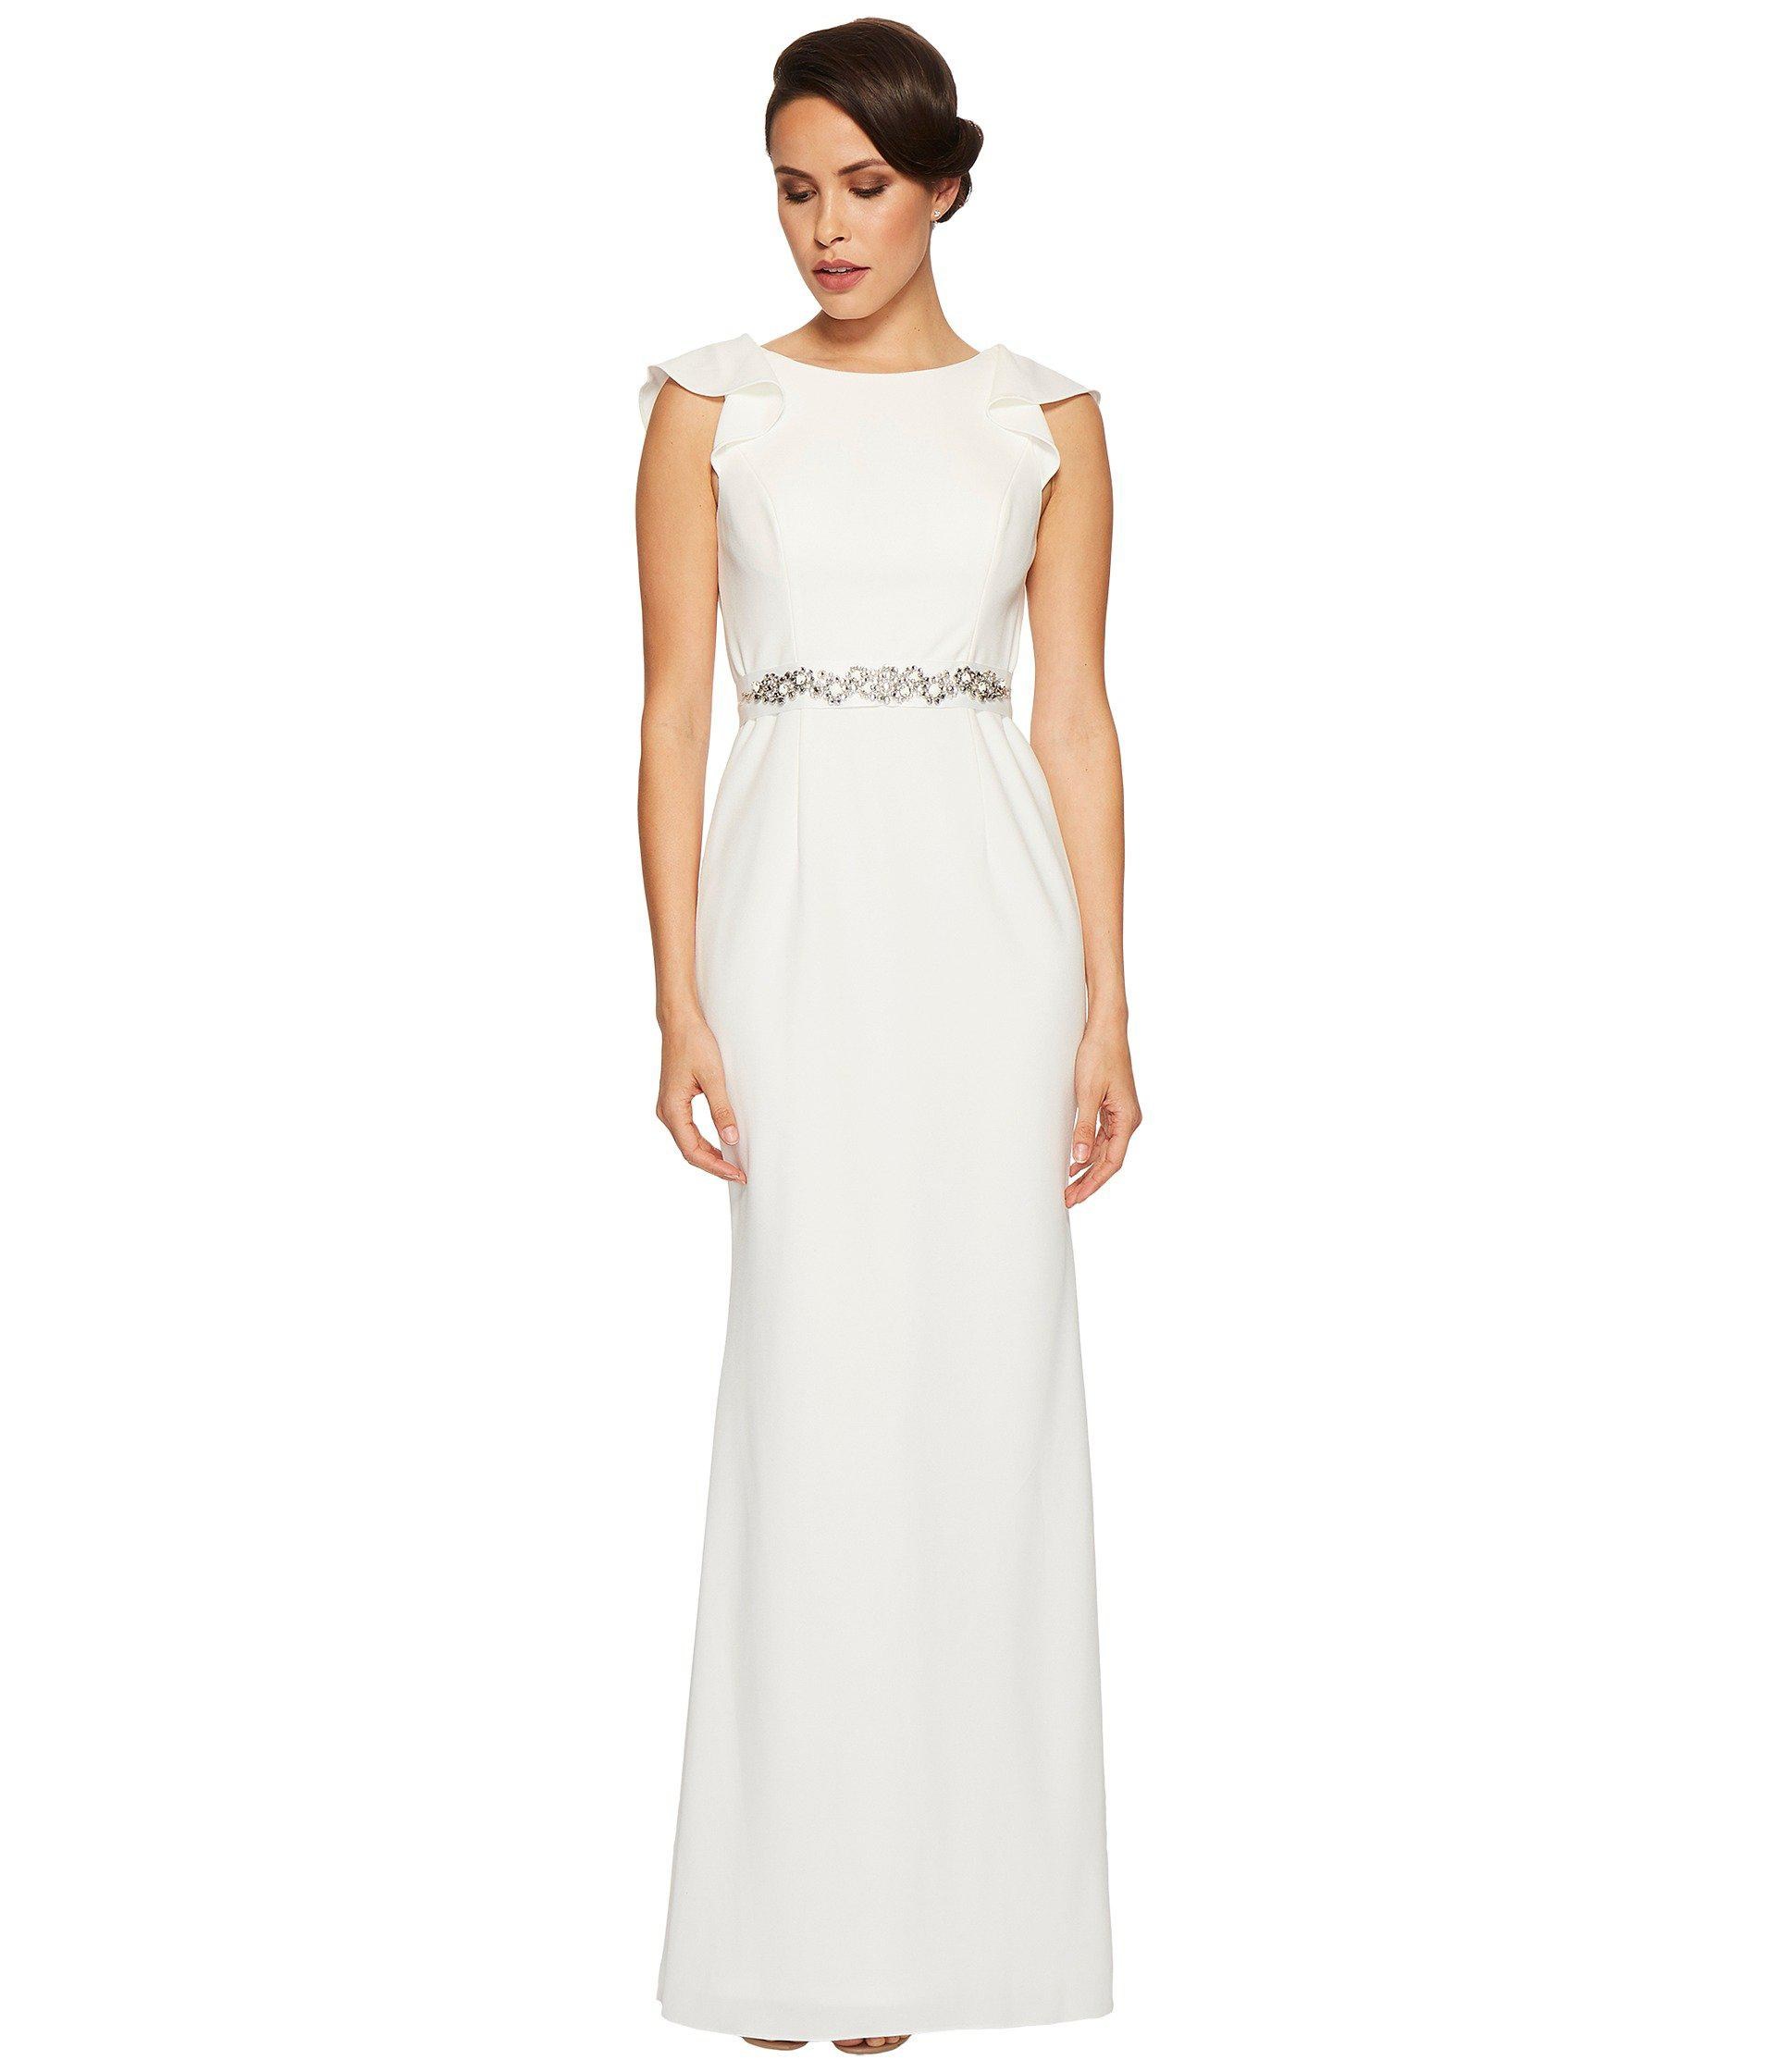 130192790a Adrianna Papell. Women s White Fluttered Short Sleeve Beaded Crepe Gown